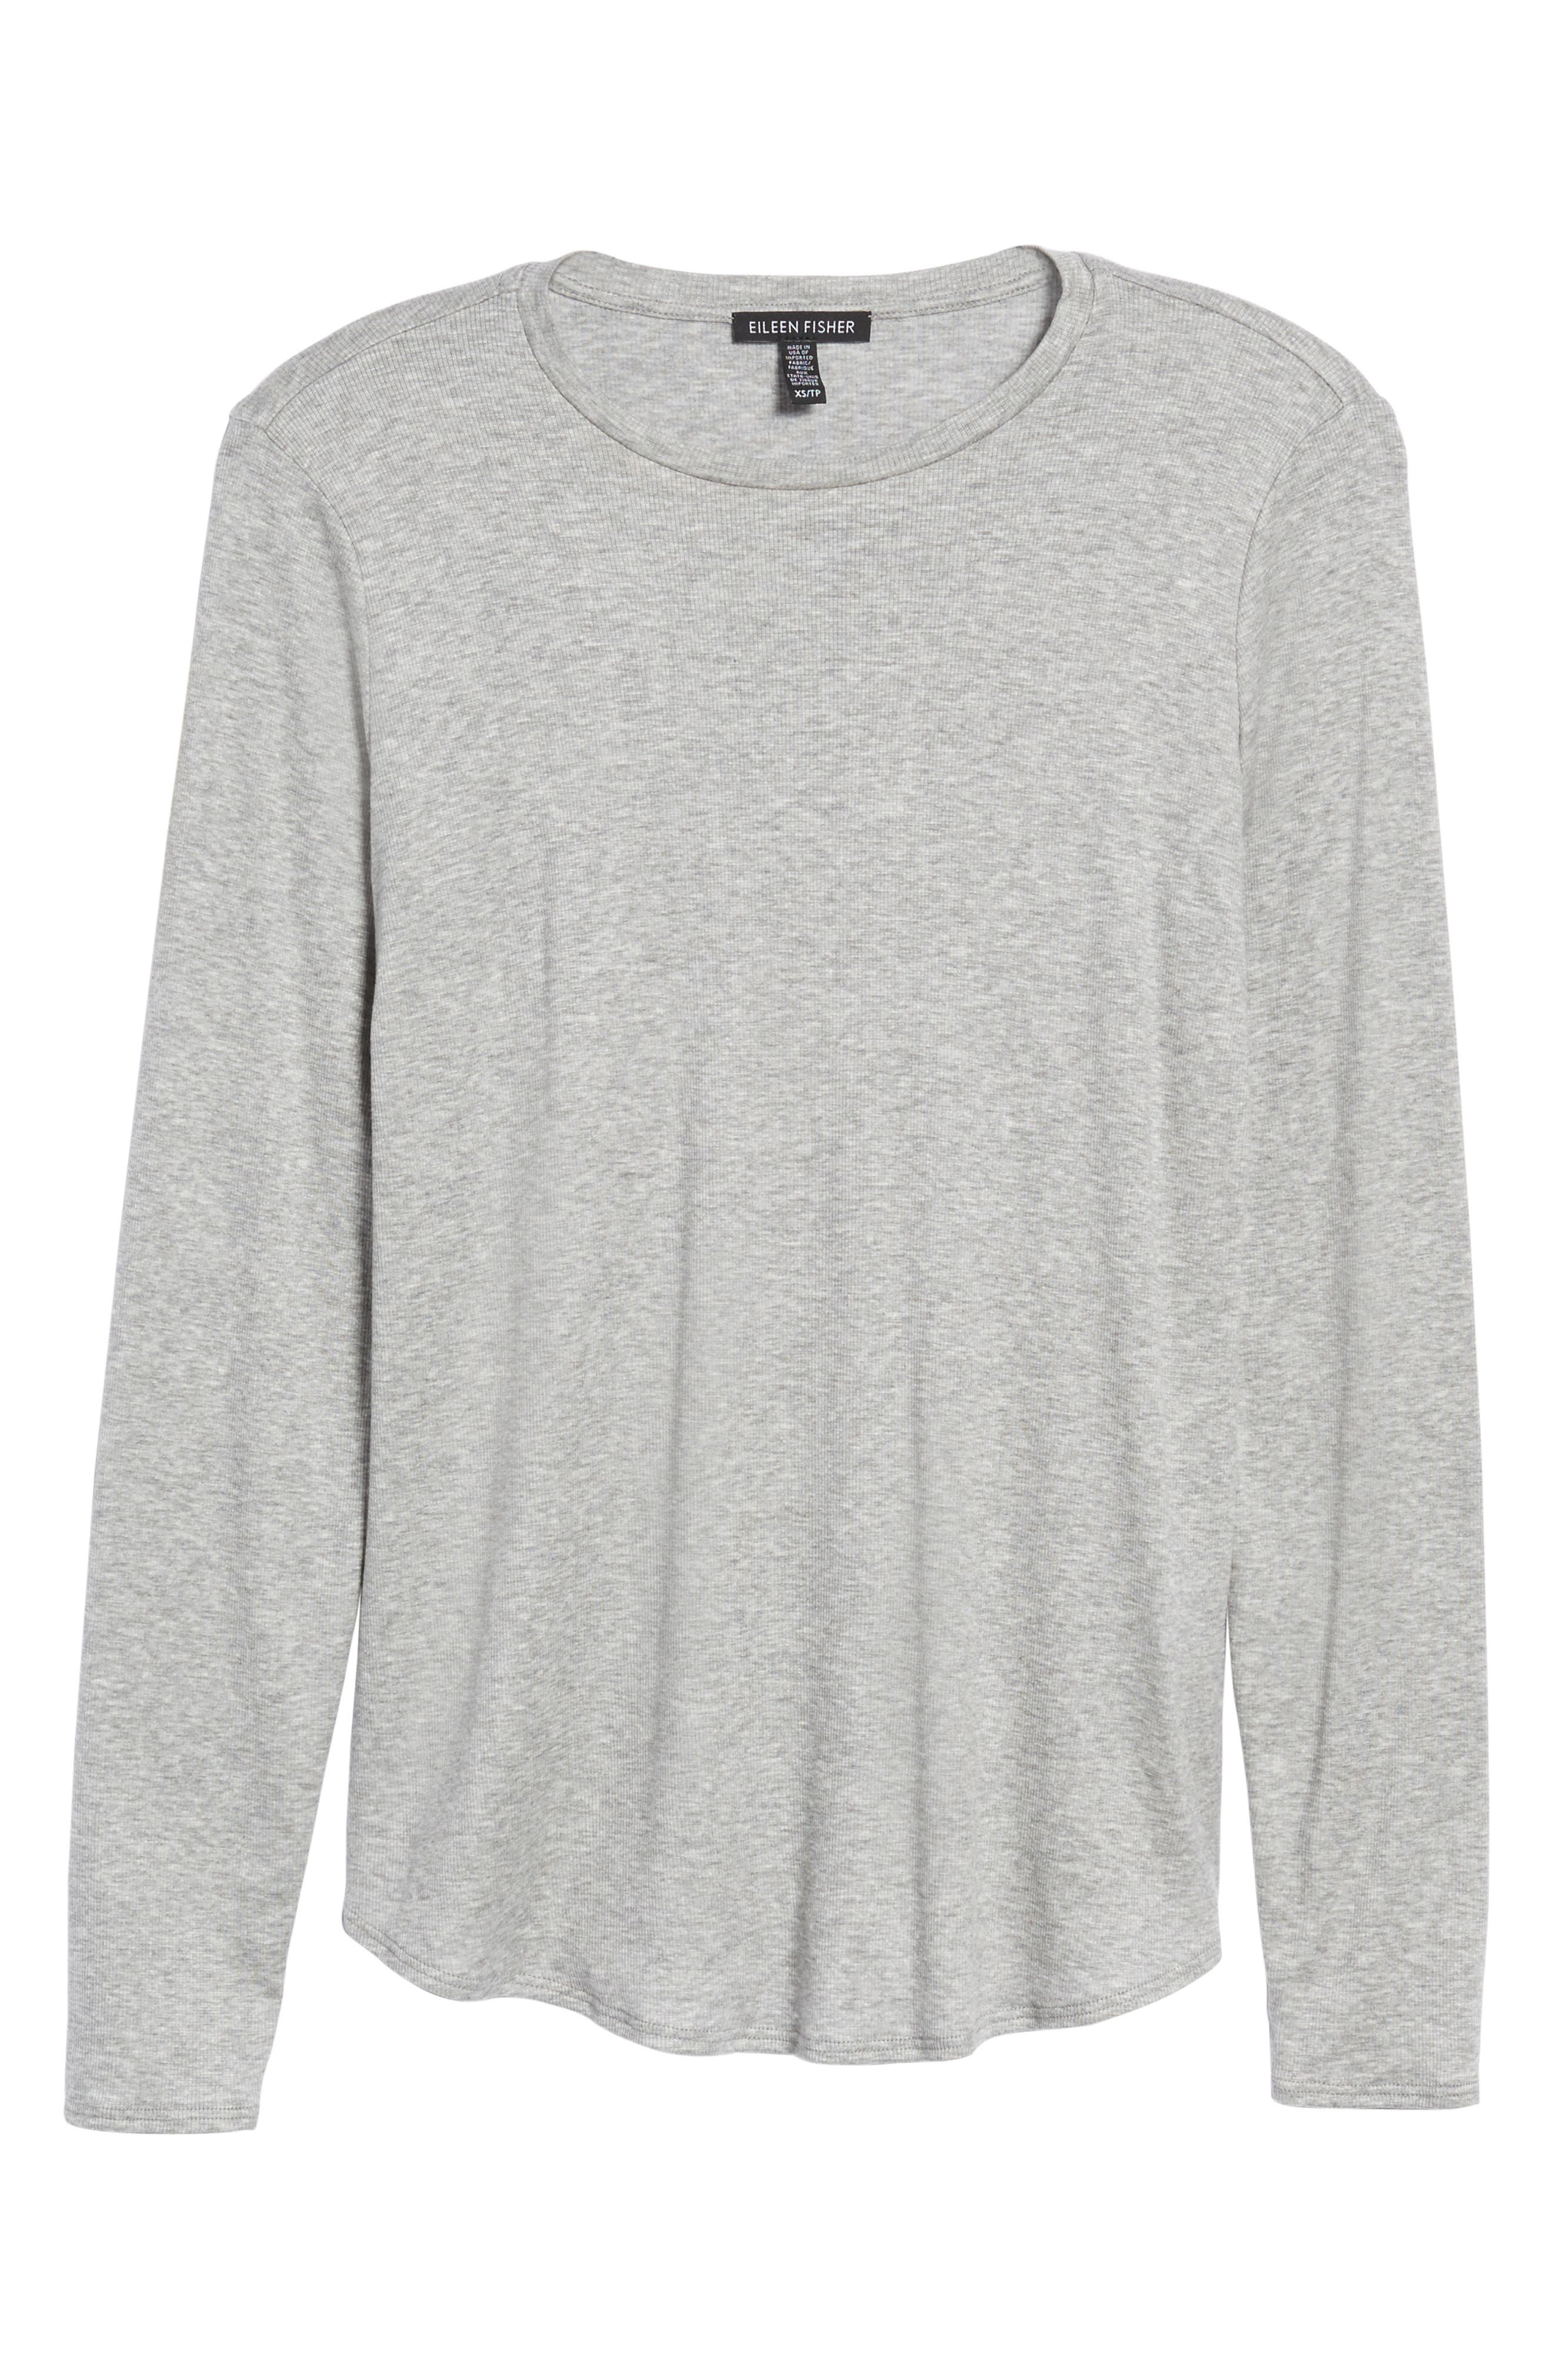 Stretch Tencel<sup>®</sup> Top,                             Alternate thumbnail 6, color,                             052